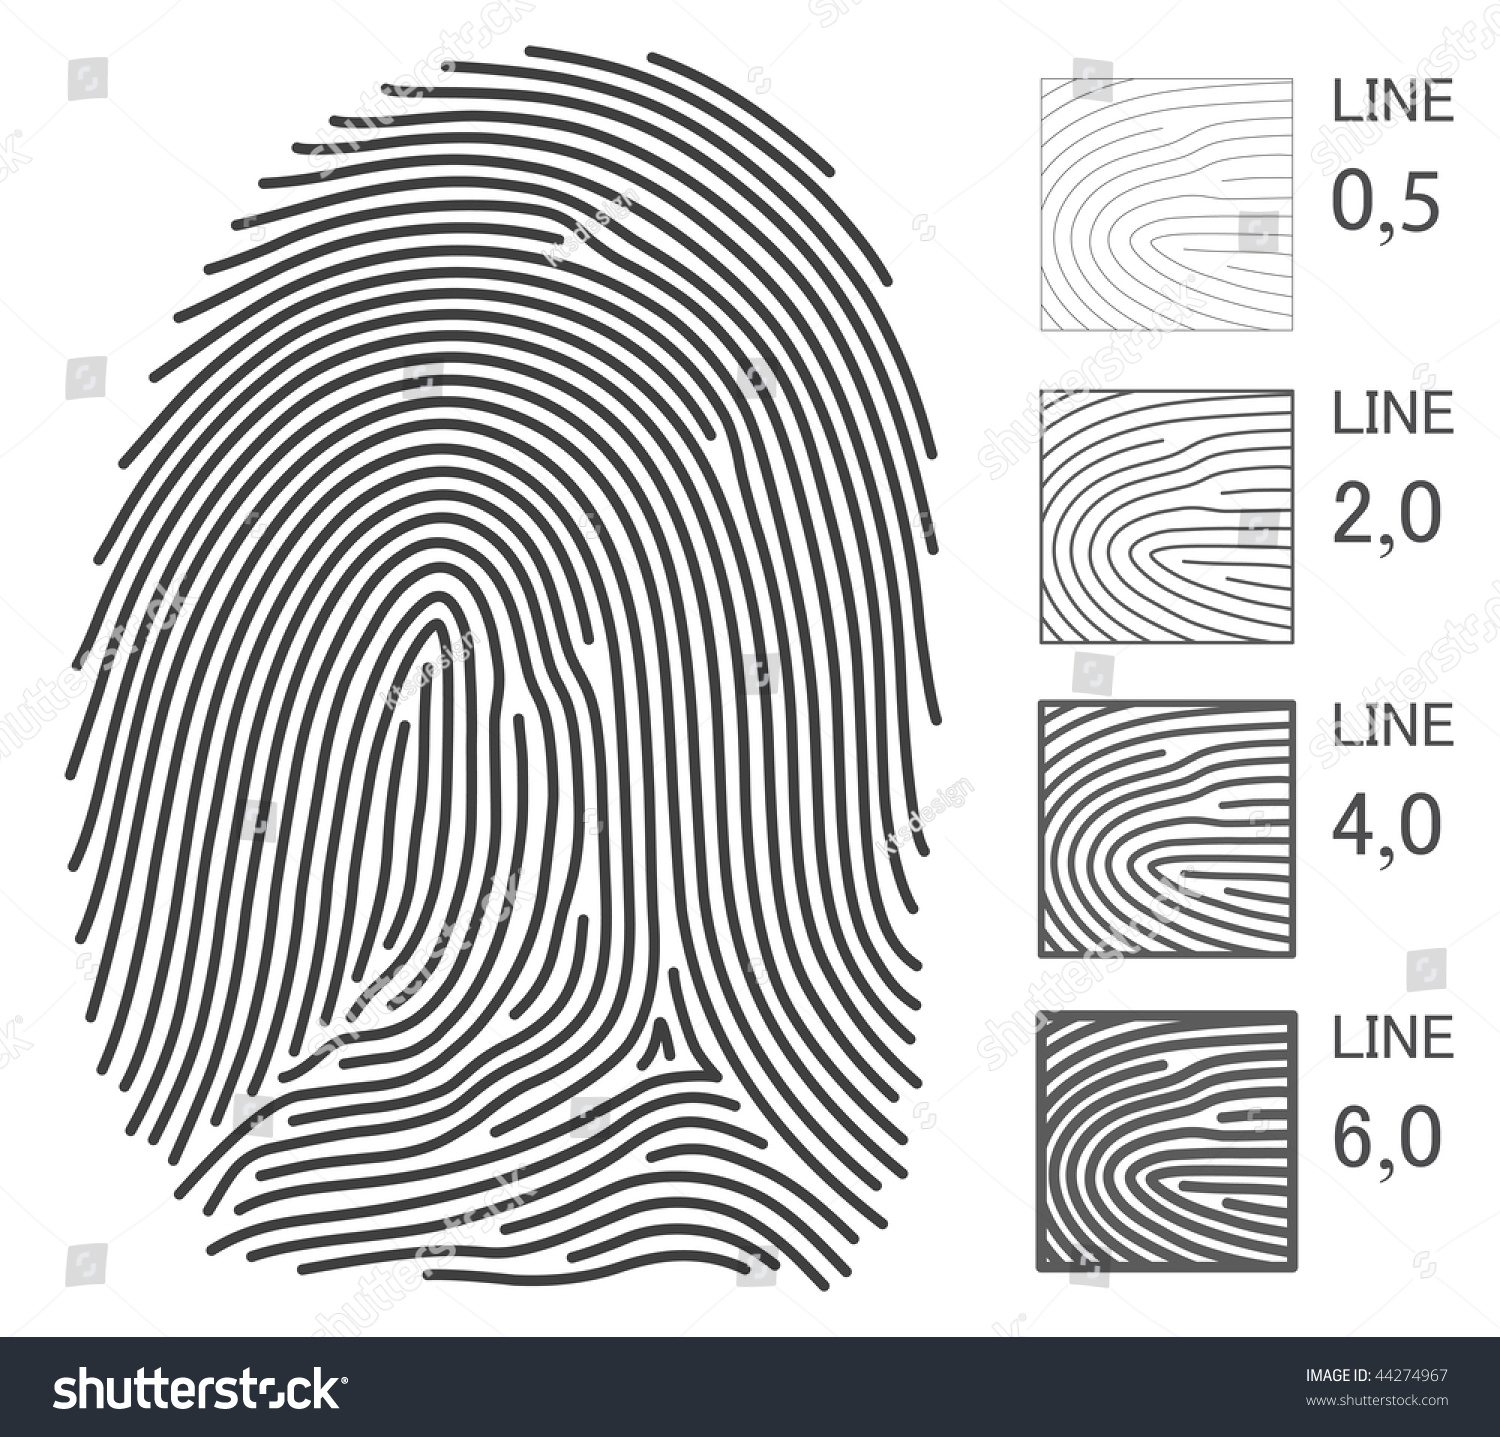 how to change line thickness squarespace